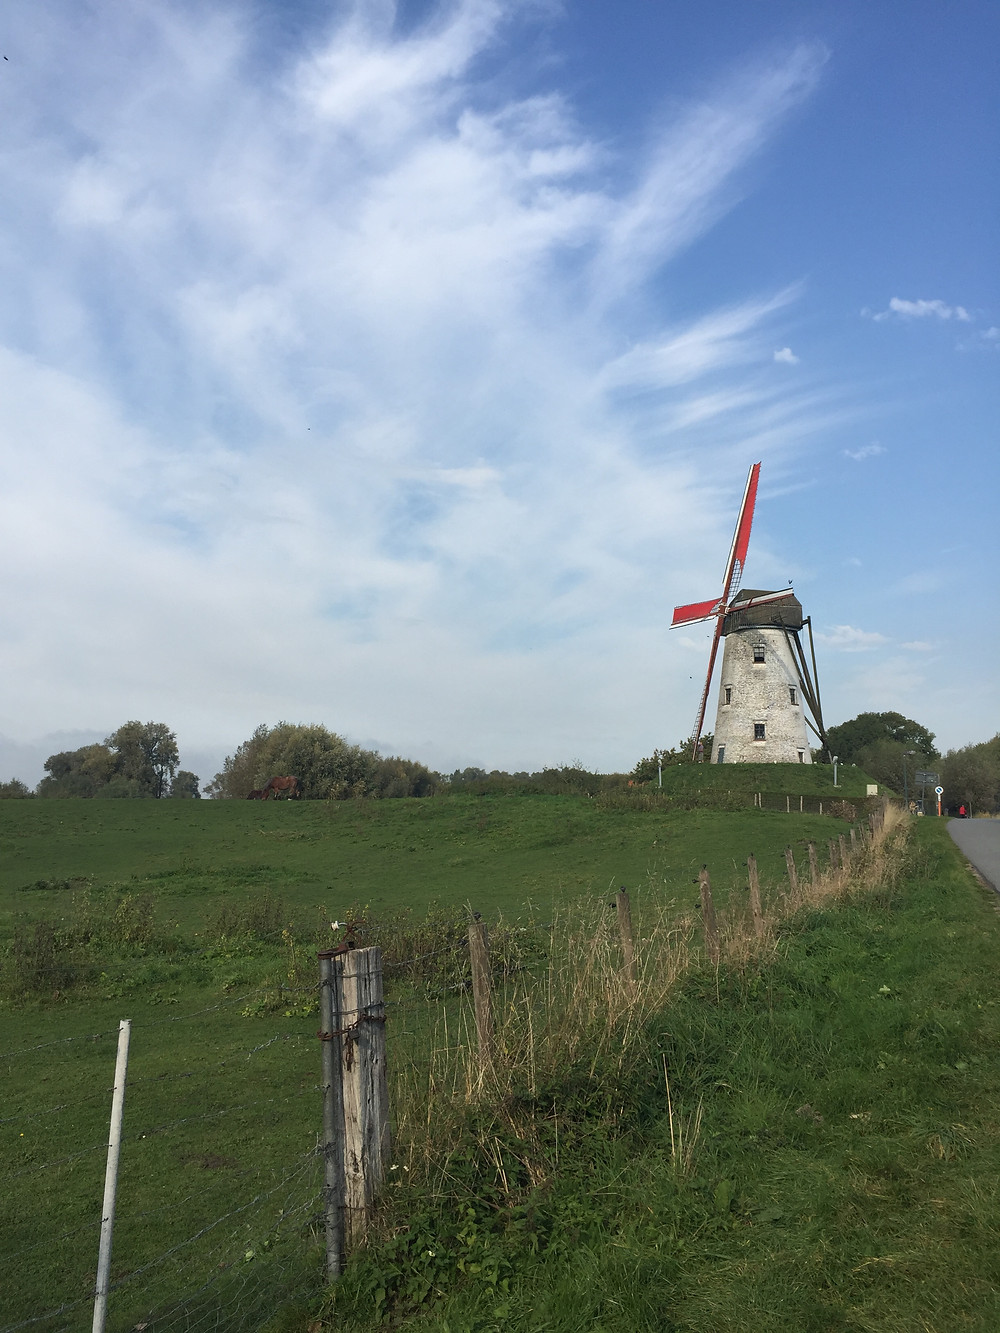 A windmill greets visitors at the edge of Damme, Belgium